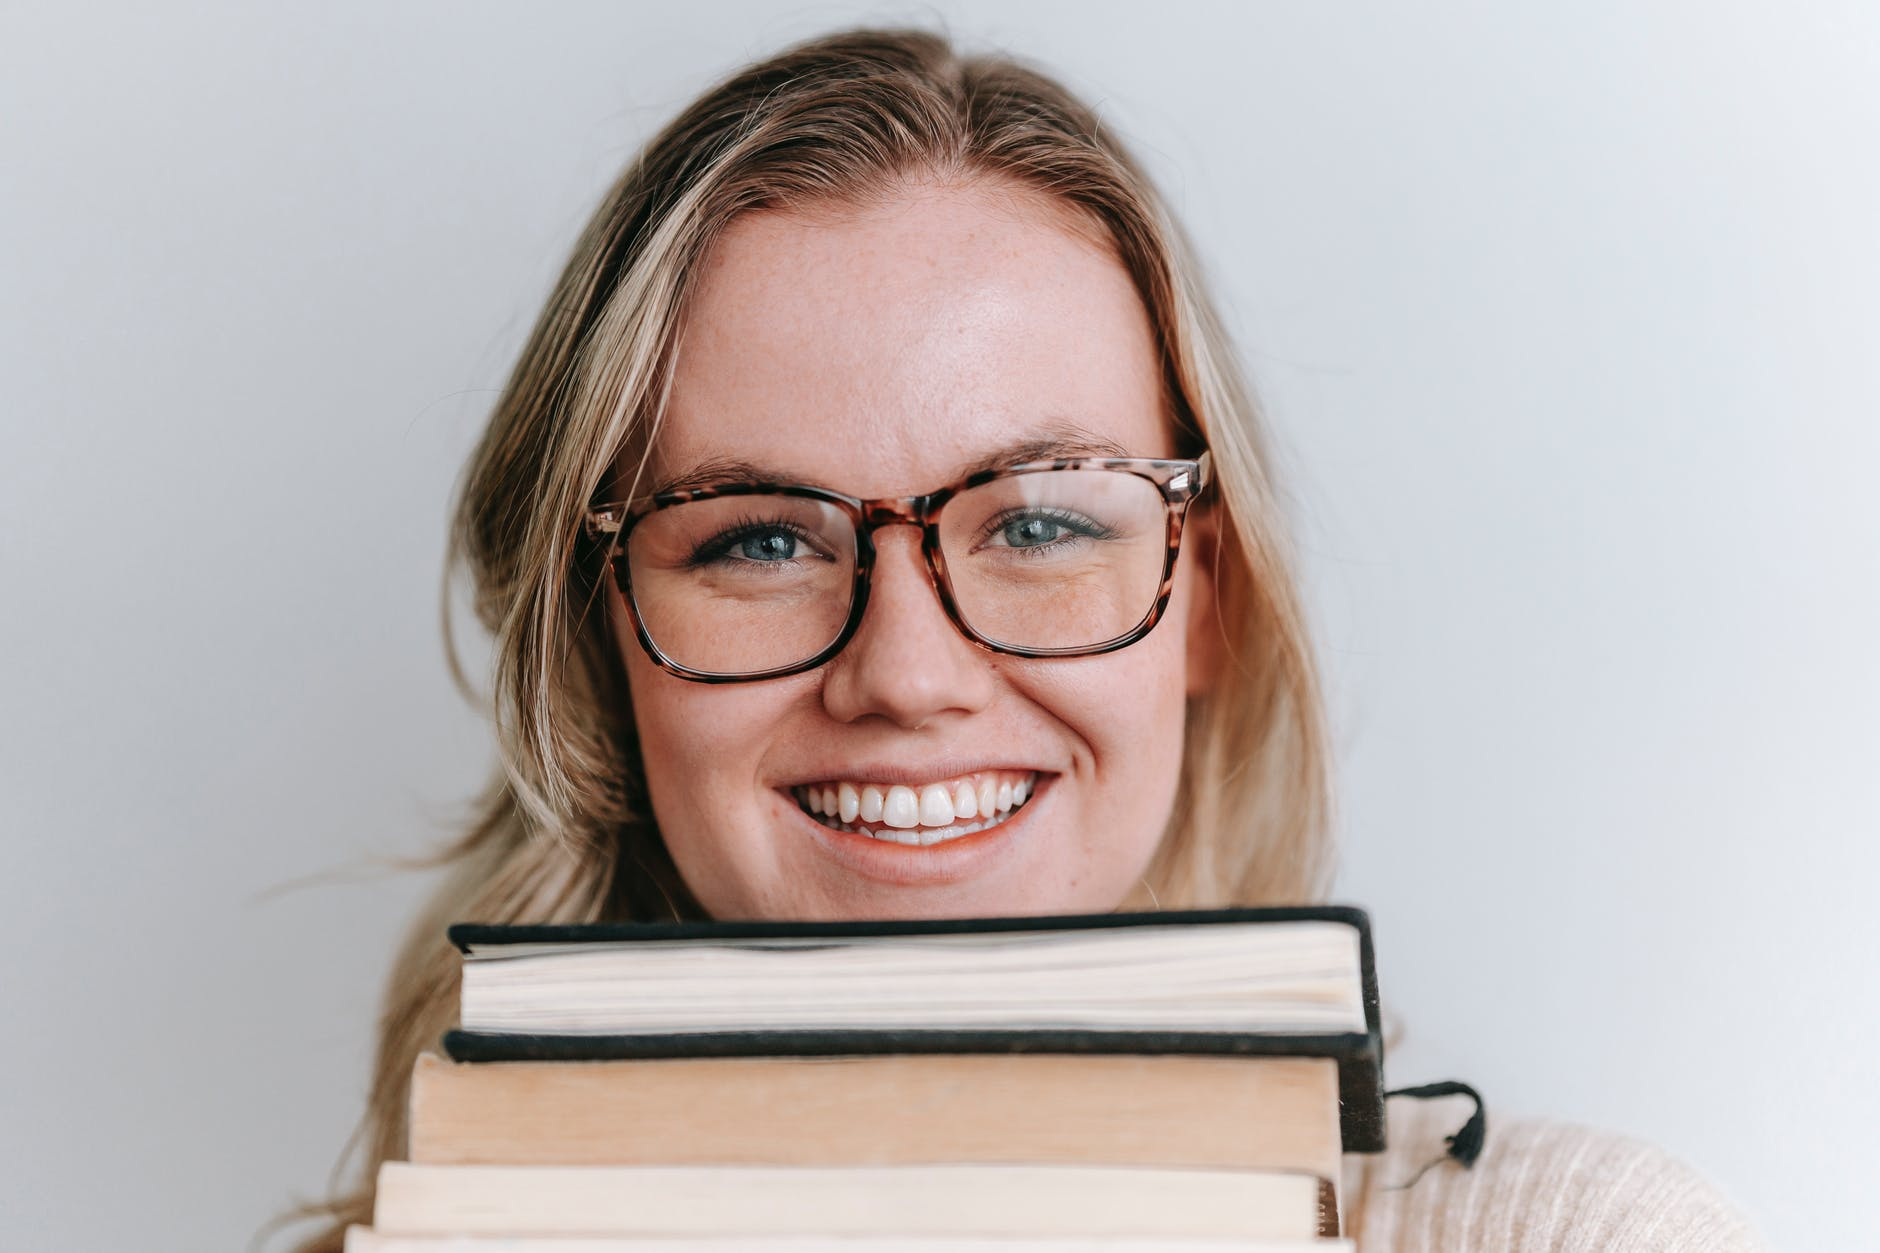 smiling woman in eyeglasses with books